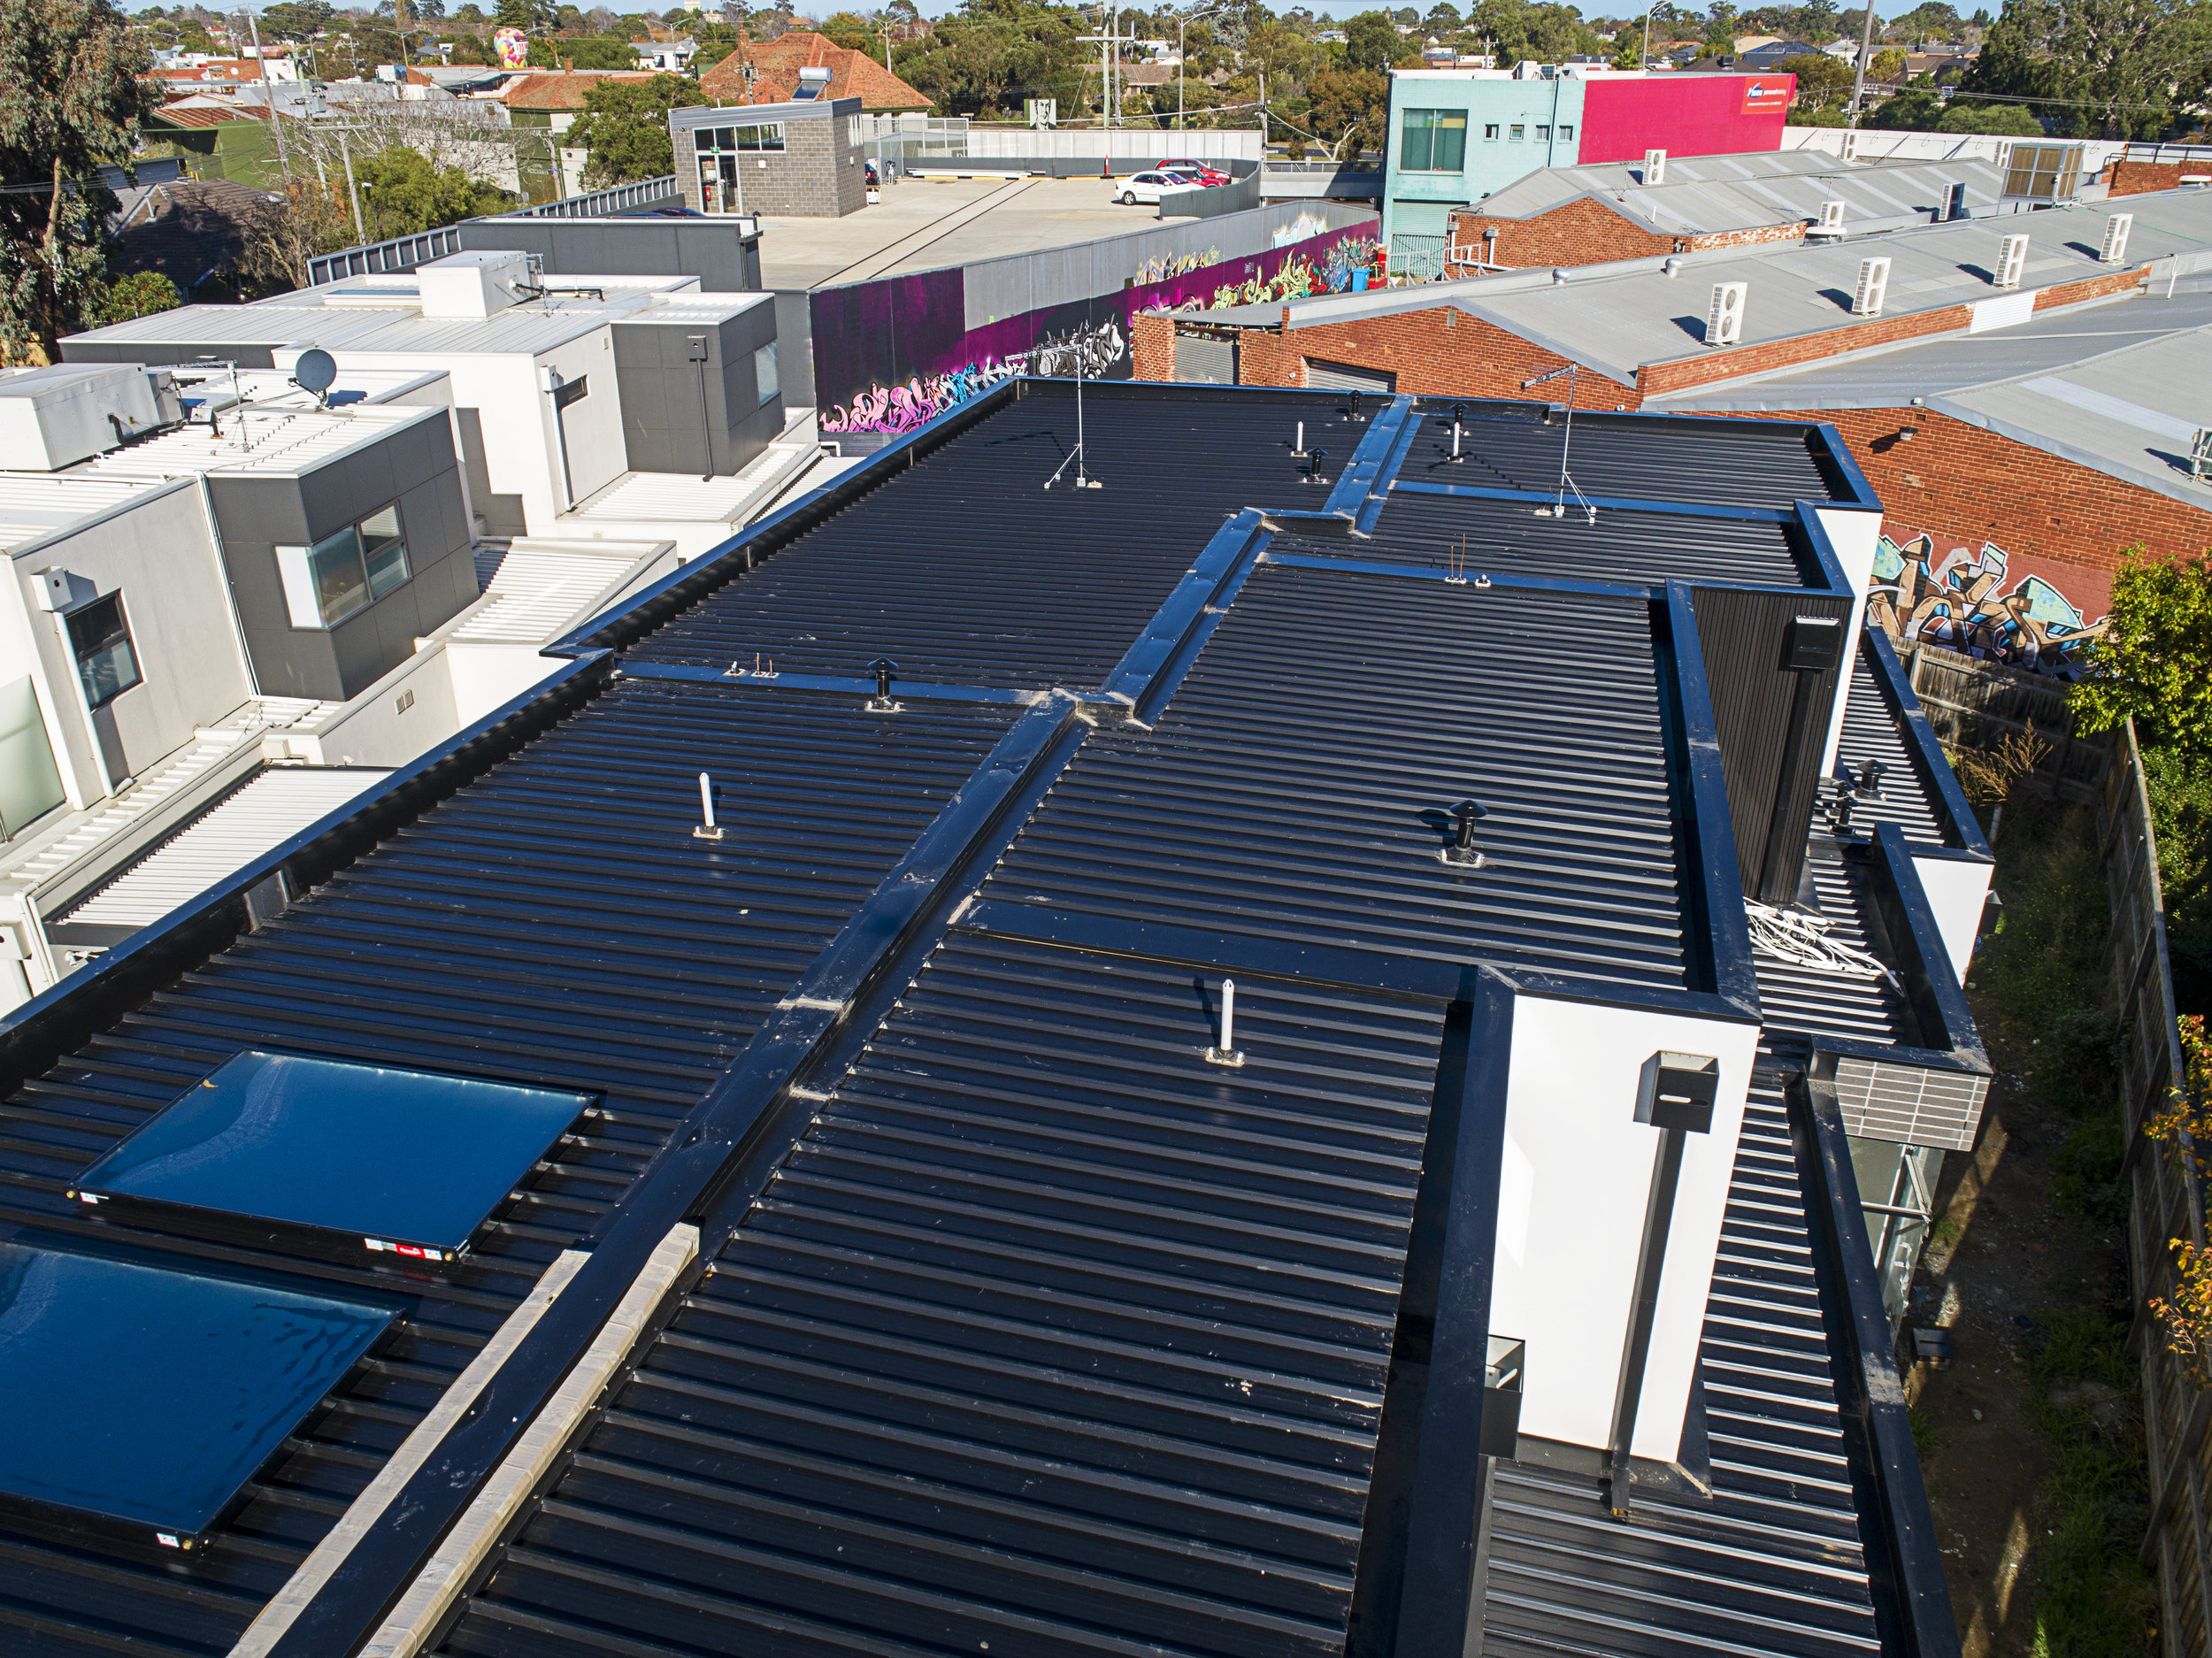 Stand Out Among The Crowd - Metal Roofing is more easily adjusted to your liking. Providing several colours and shades, all of them BOLD, DK Roofing is here to make your property the envy of the block.